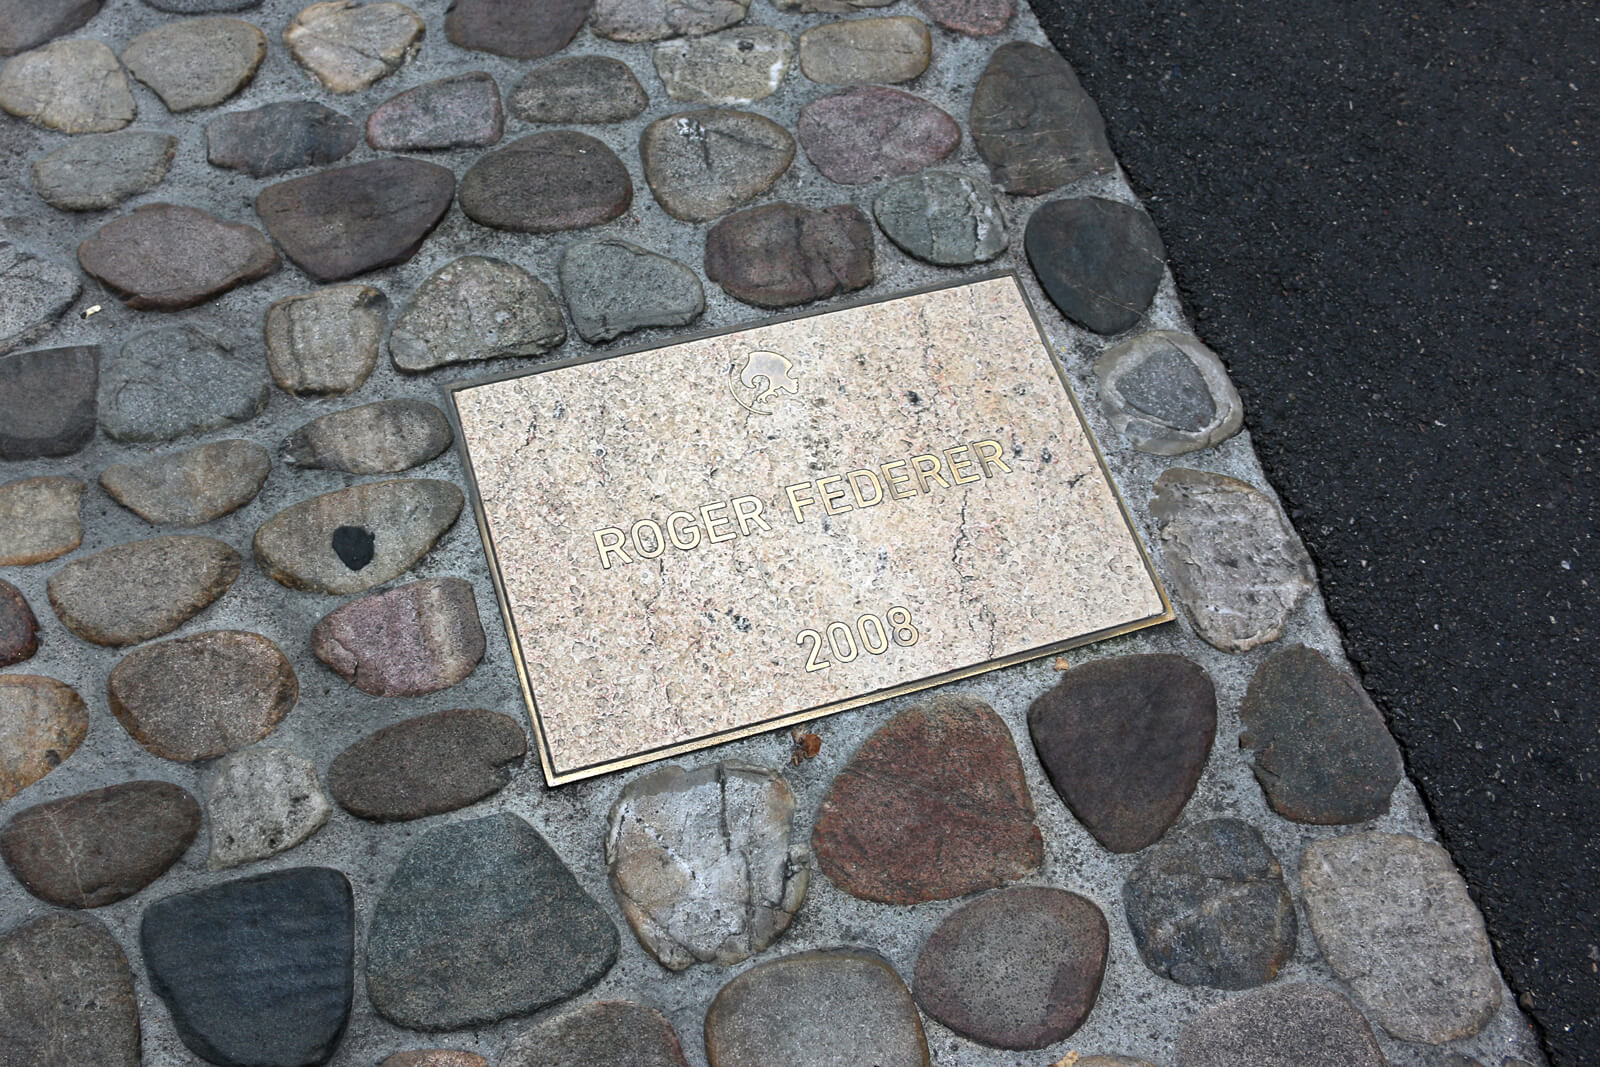 Roger Federer Walk of Fame in Basel